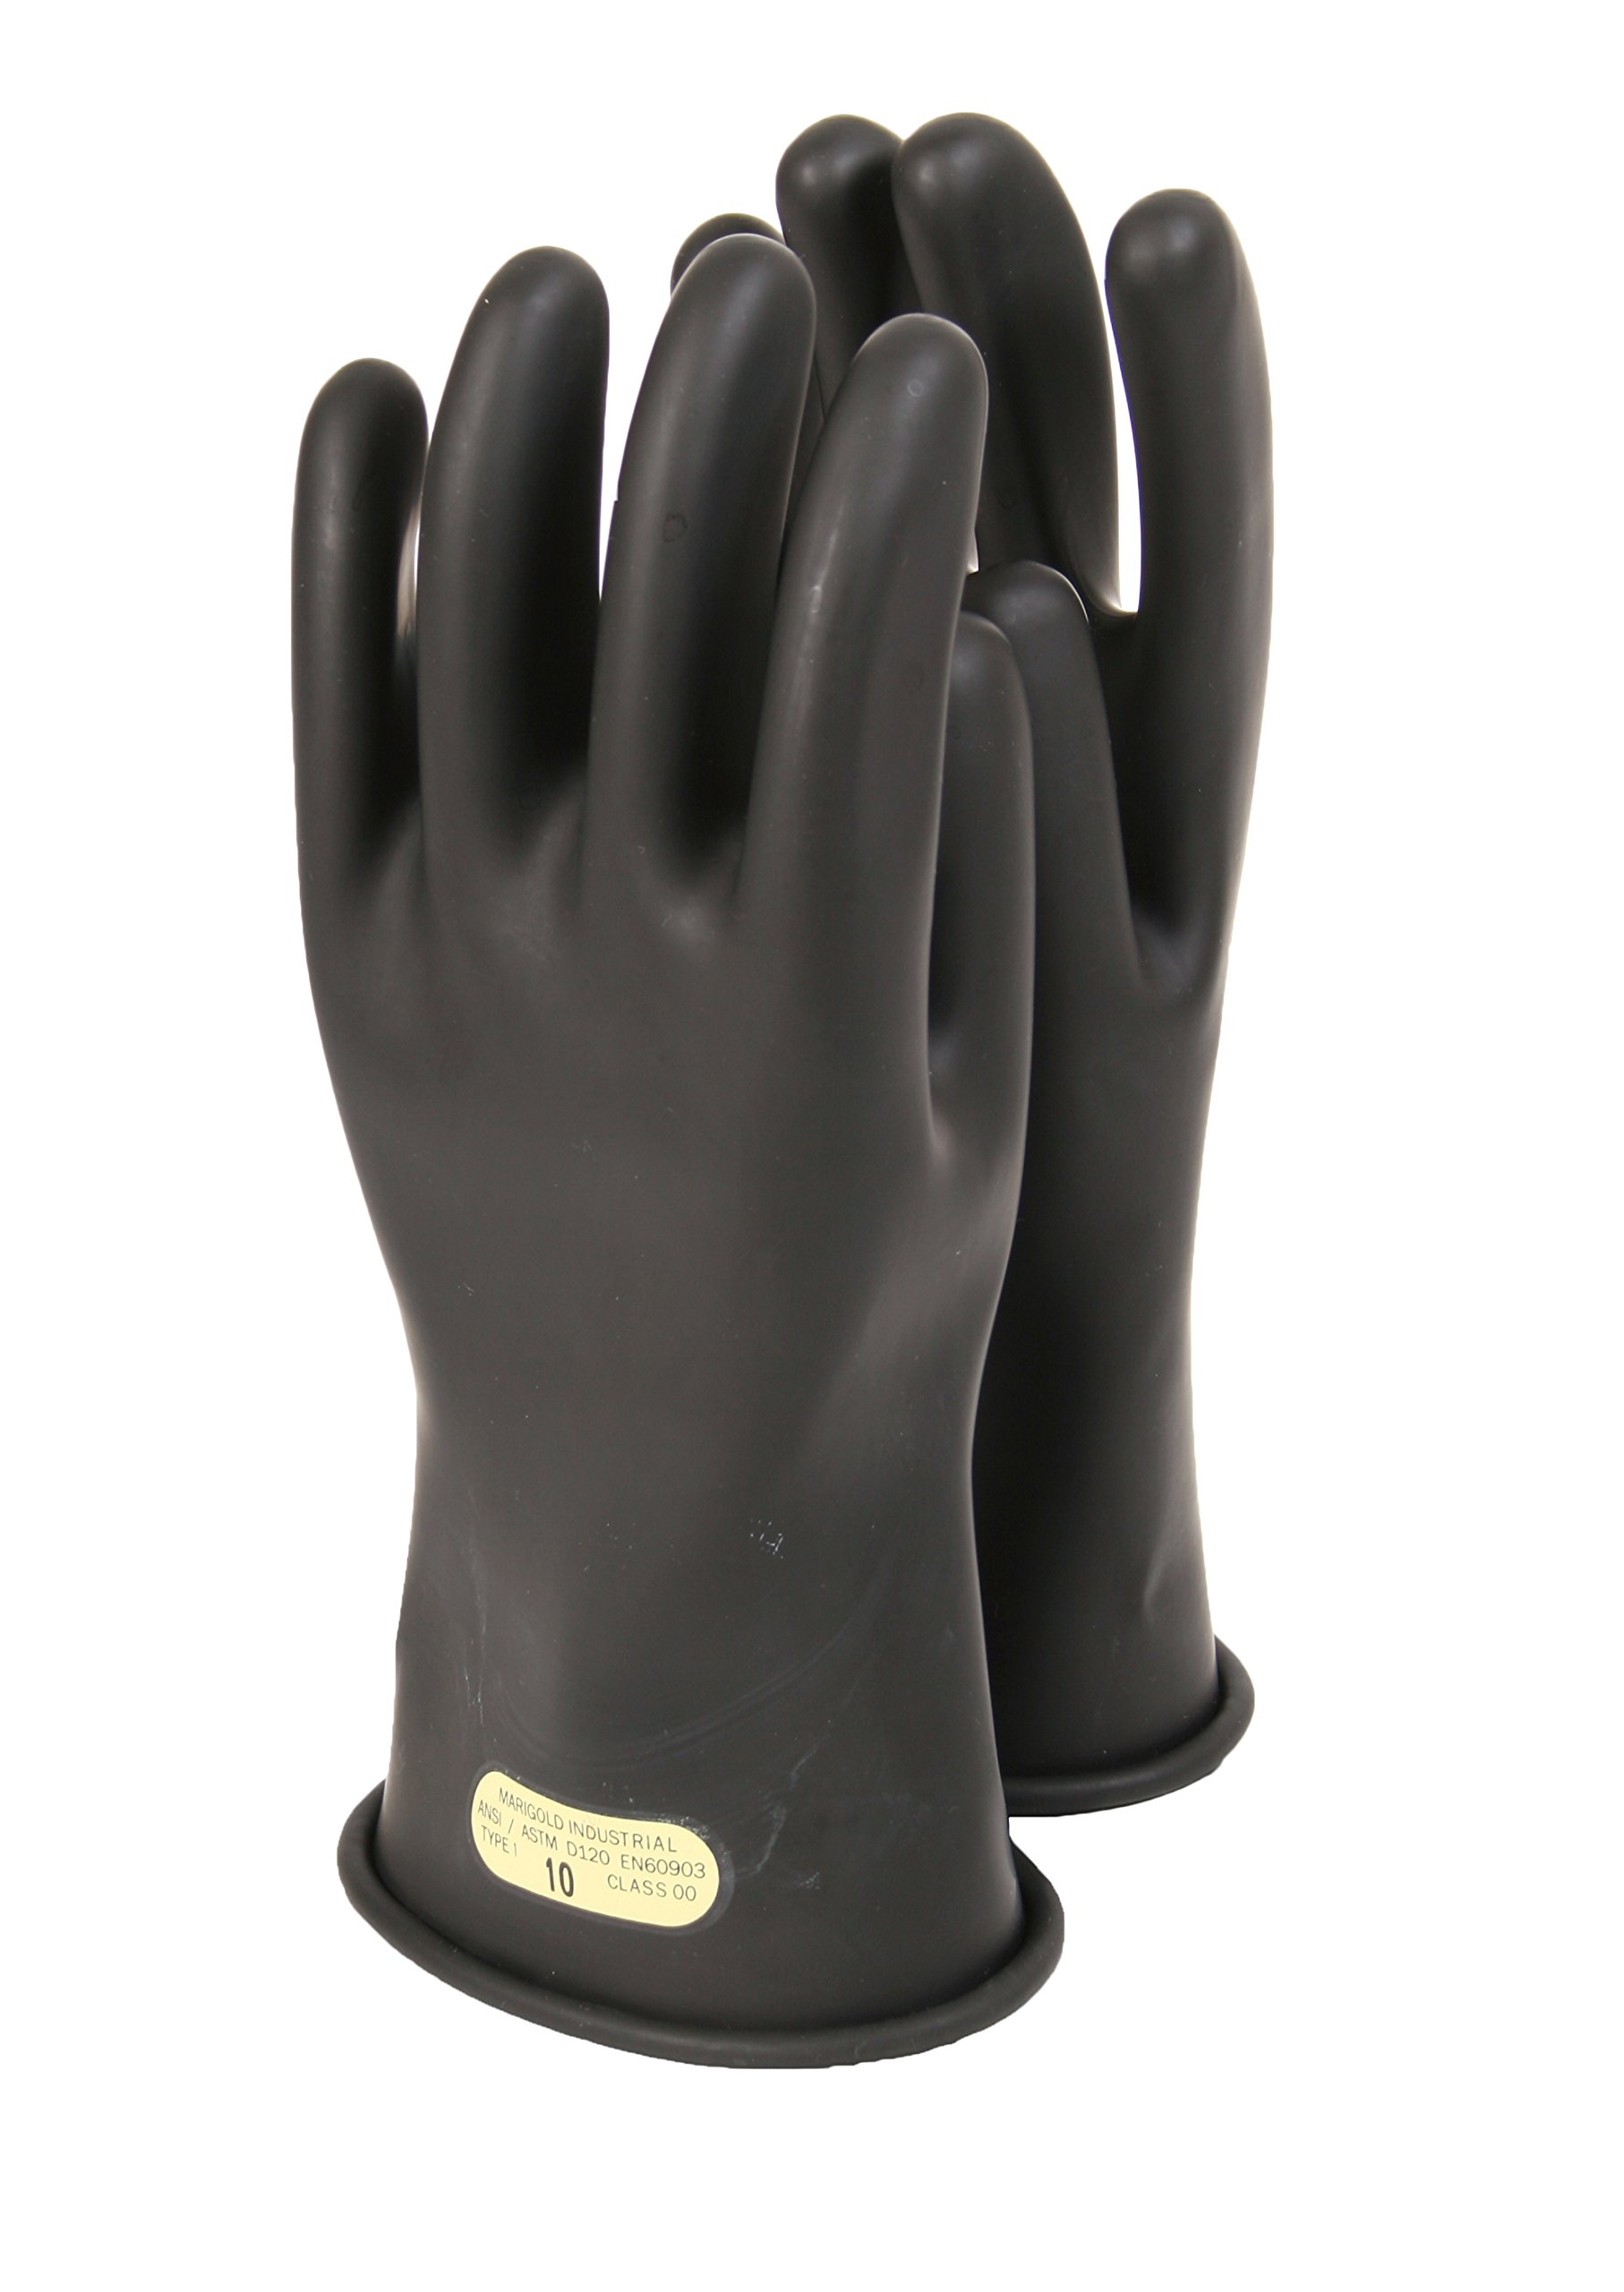 National Safety Apparel DWH11010 Class 0 Rubber Voltage Gloves, 11'', Size 10, Black